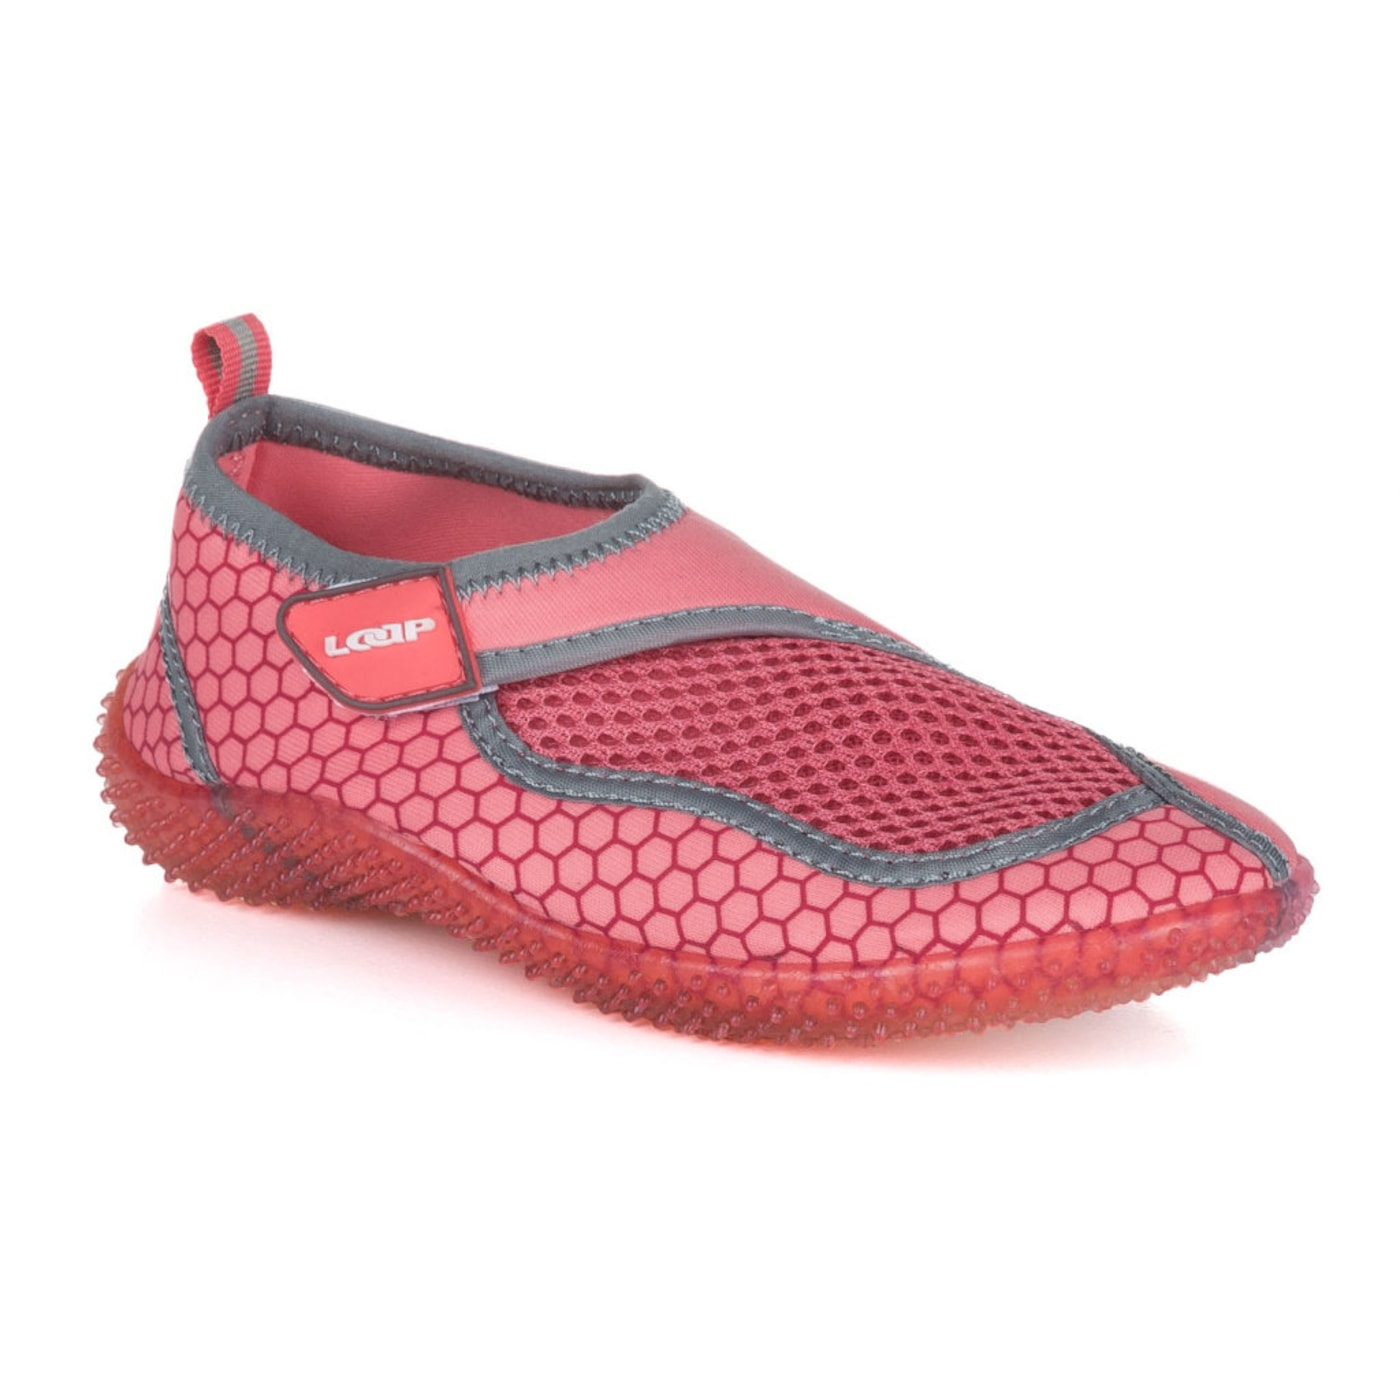 COSMA KID children's water shoes pink